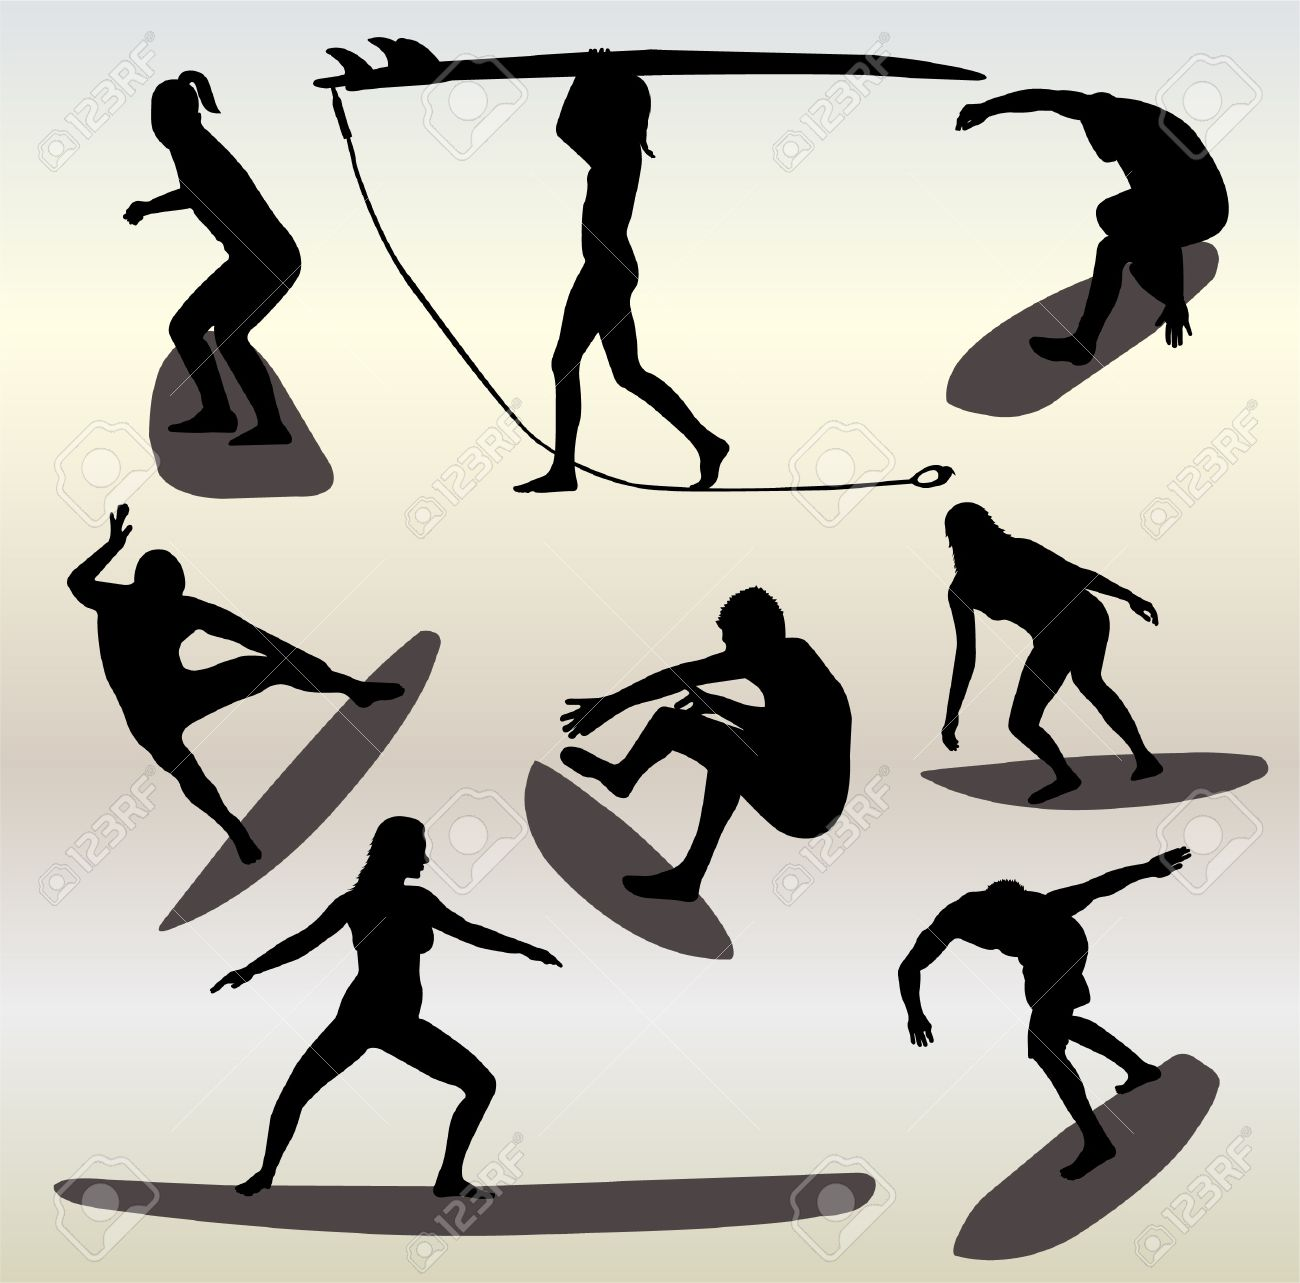 silhouettes of surfers Stock Vector - 9559788